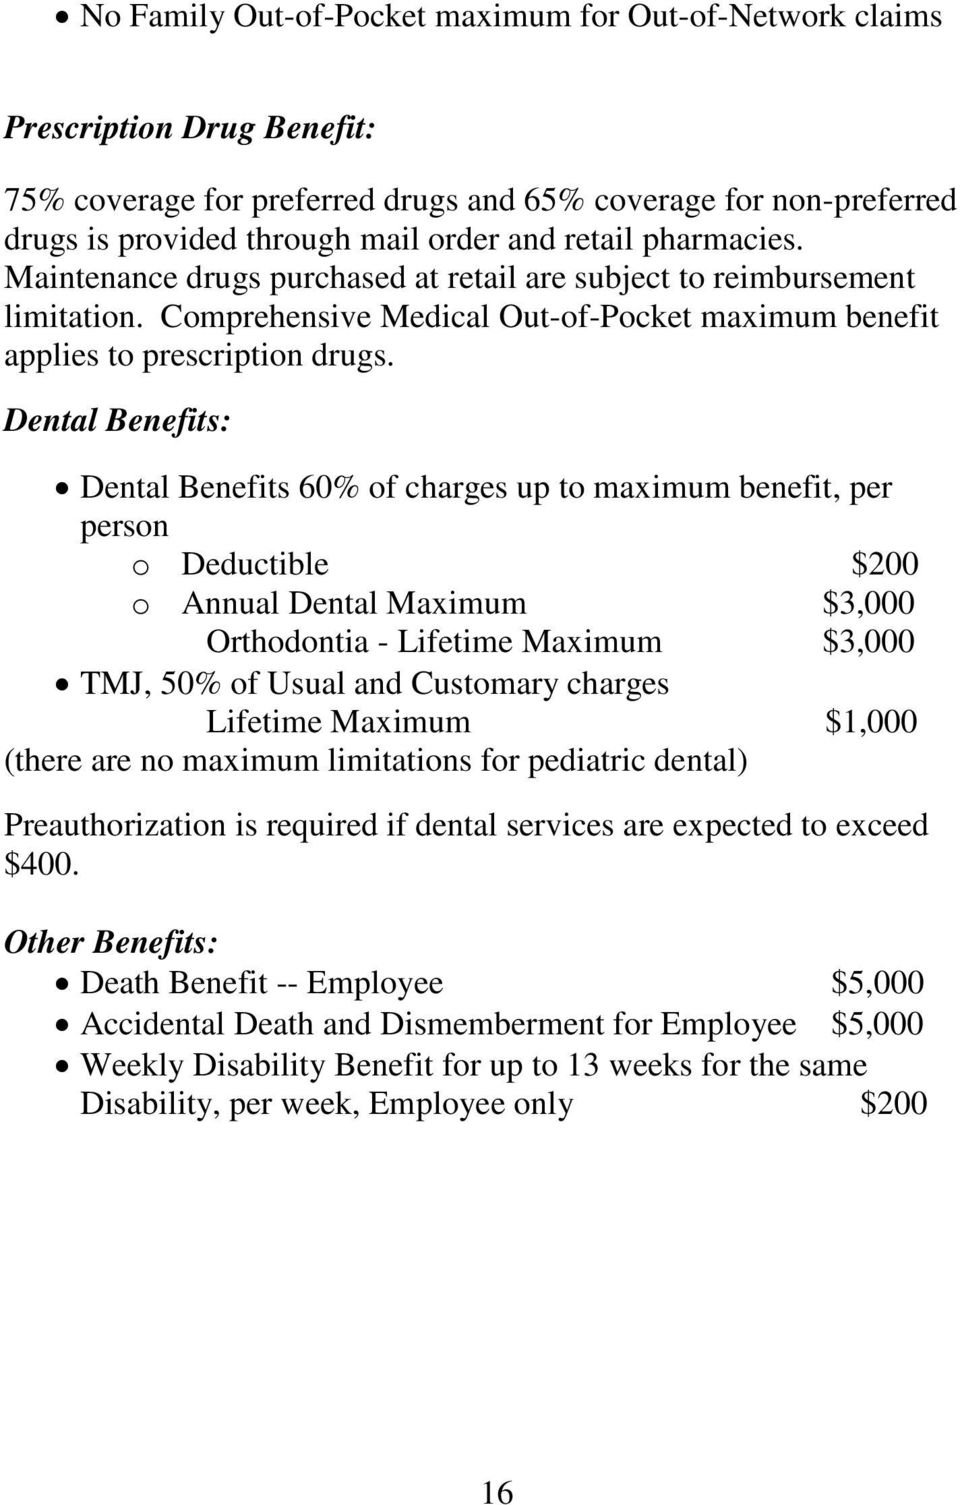 Dental Benefits: Dental Benefits 60% of charges up to maximum benefit, per person o Deductible $200 o Annual Dental Maximum $3,000 Orthodontia - Lifetime Maximum $3,000 TMJ, 50% of Usual and